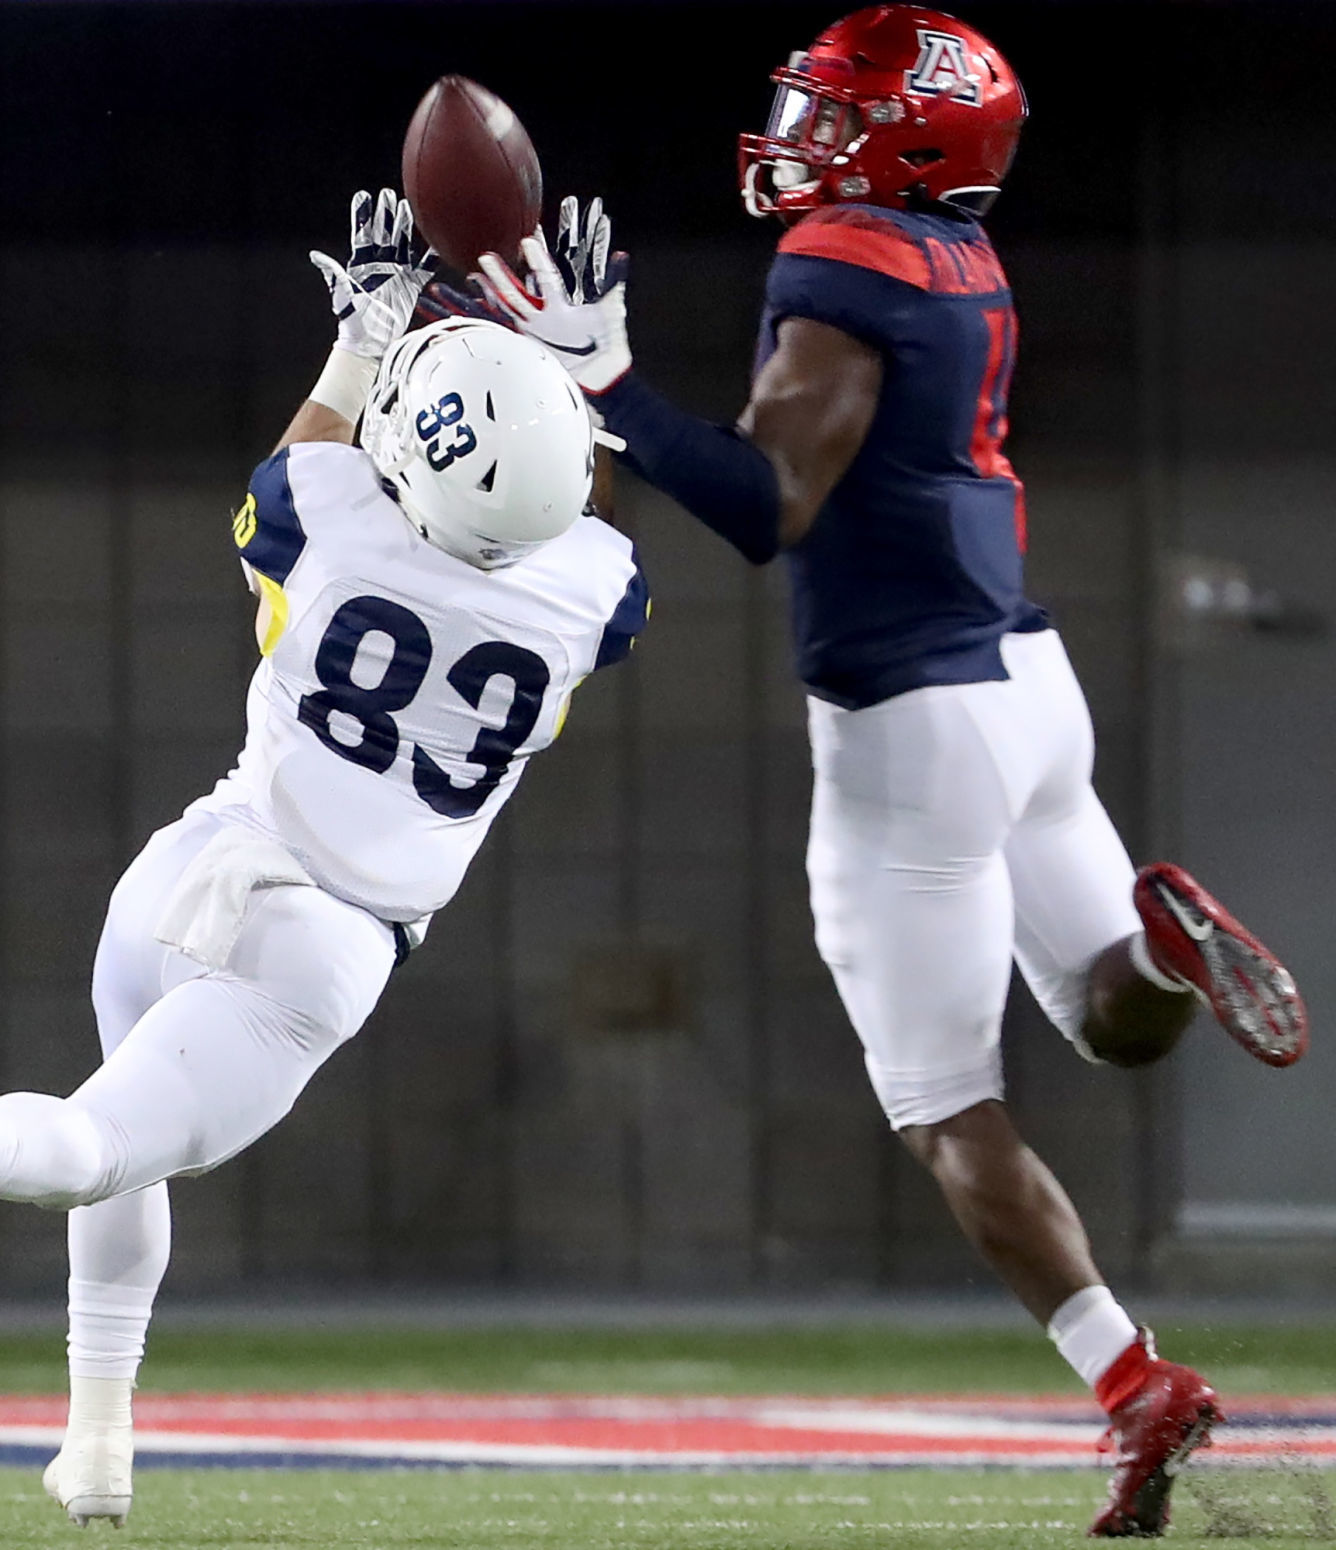 Kevin Sumlin seeking growth from young Arizona Wildcats after painful second half vs. NAU